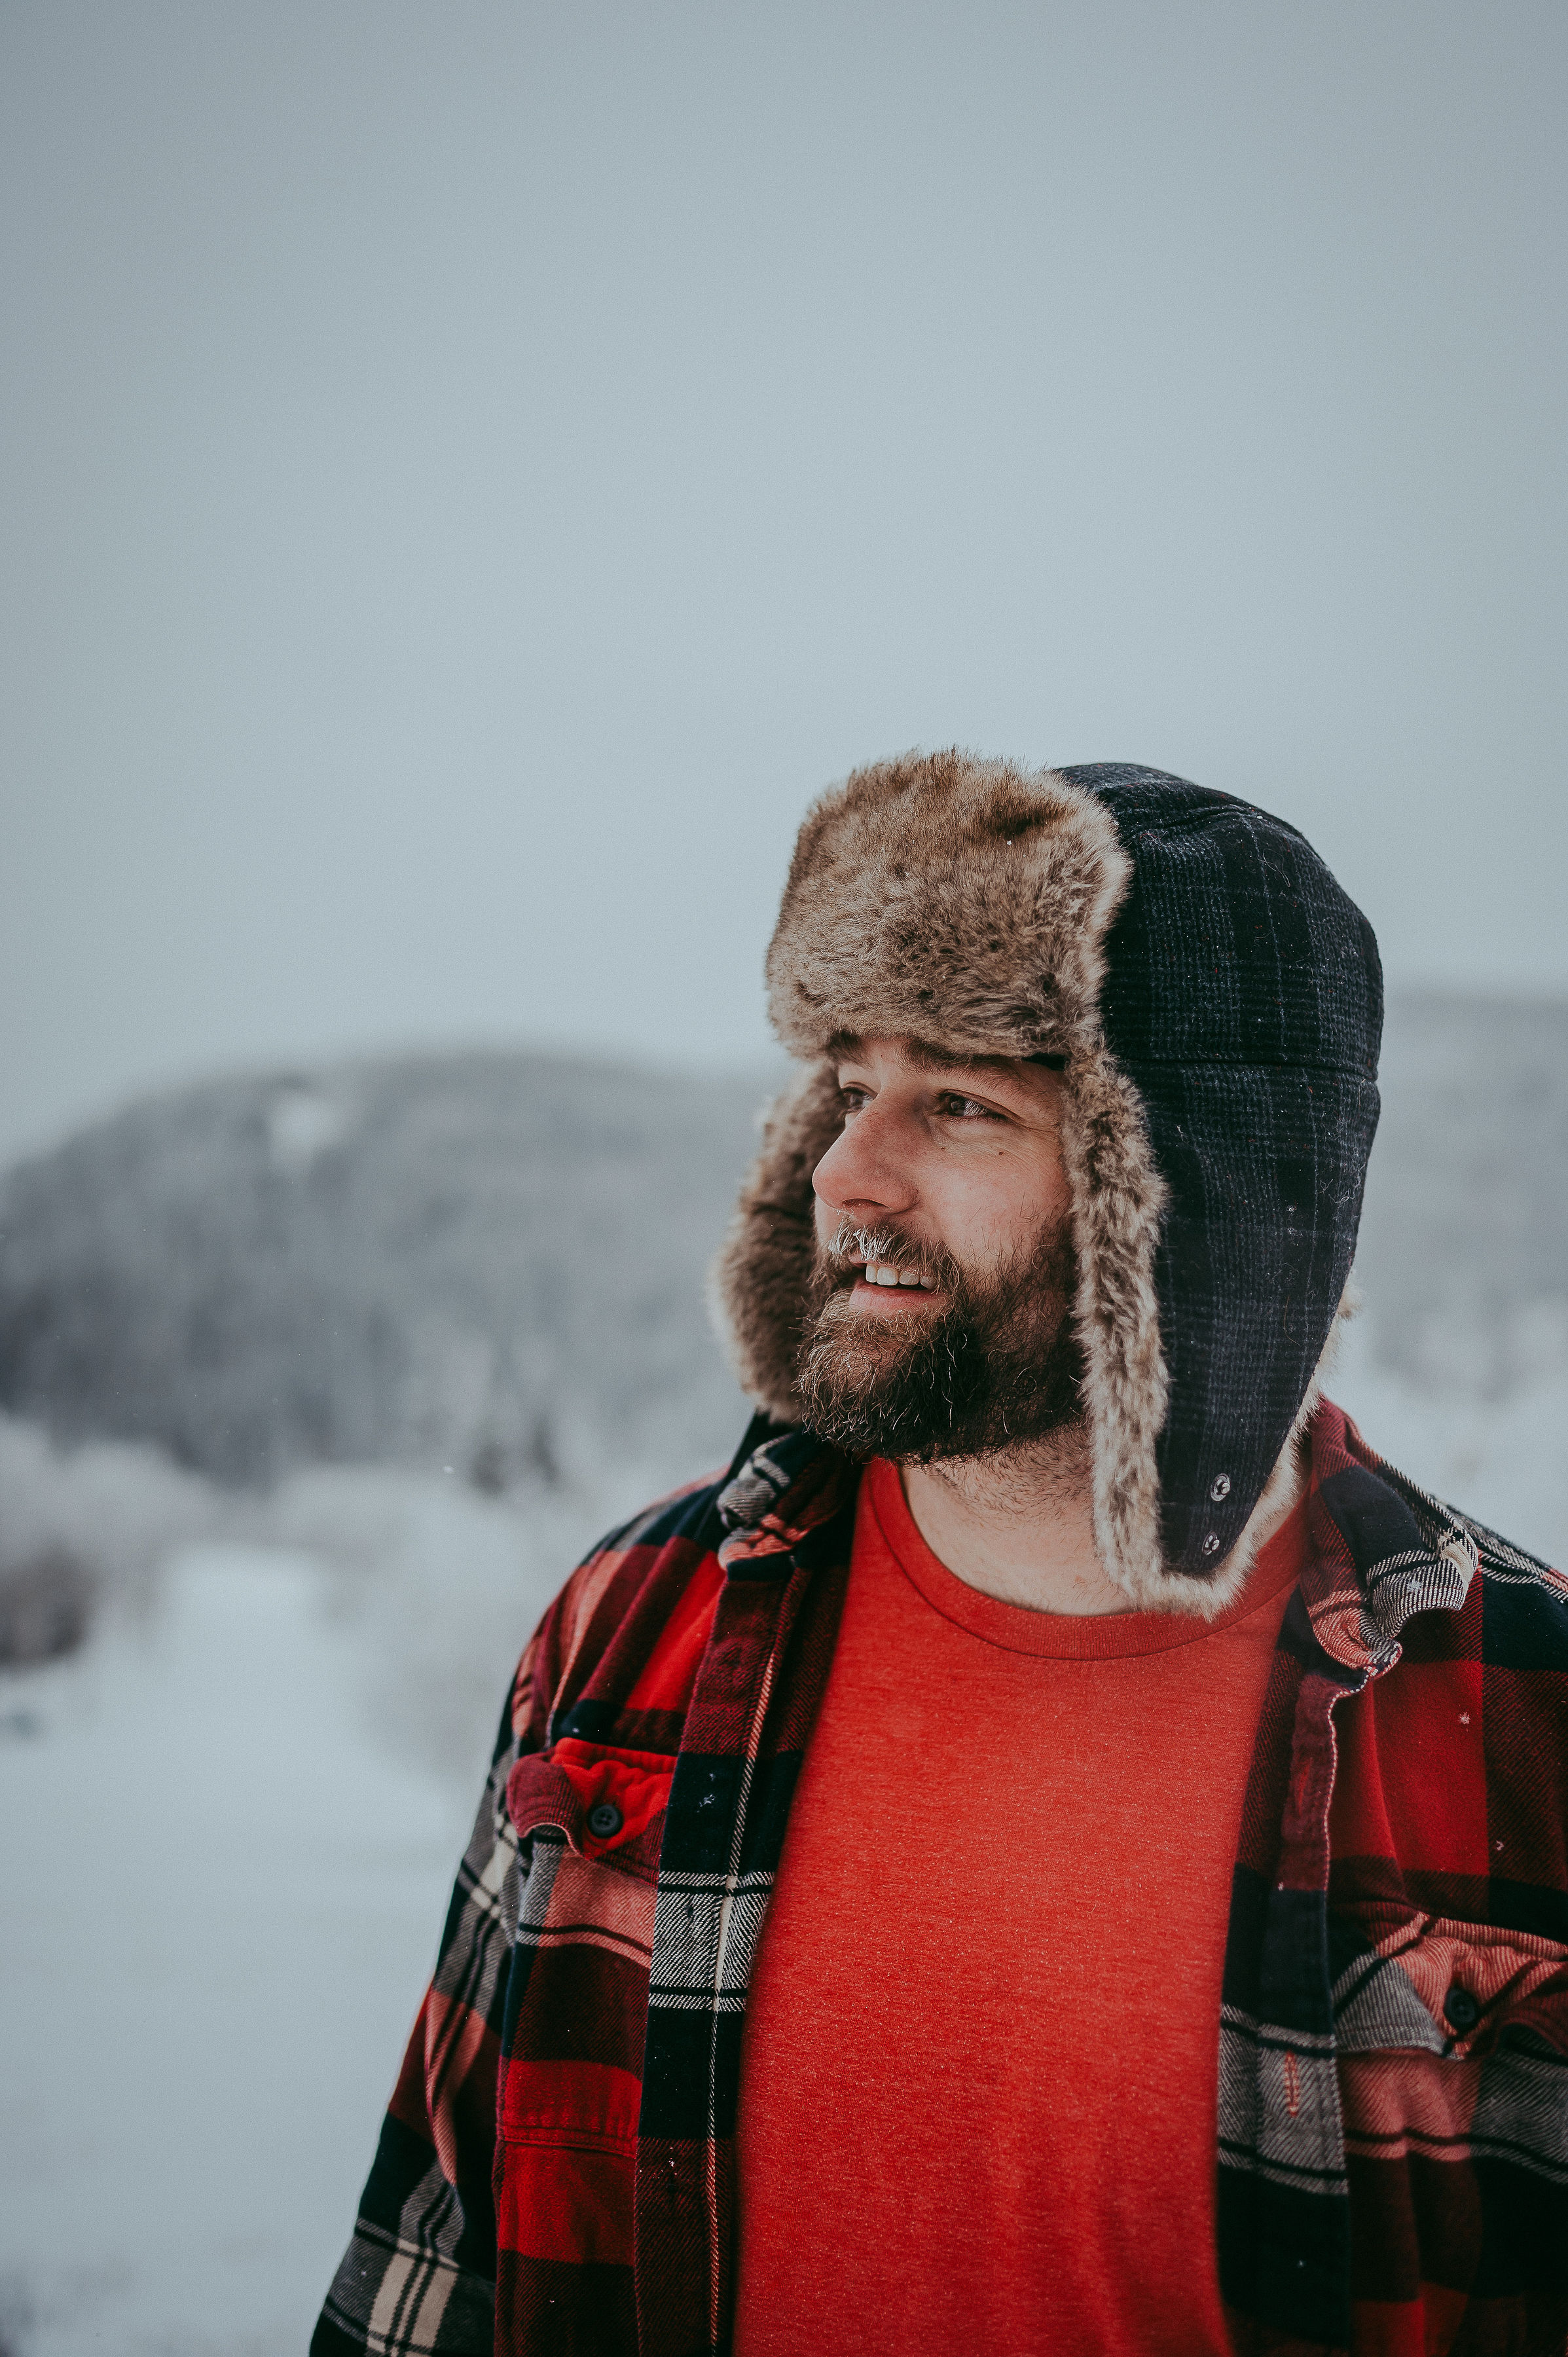 A young man enjoys the winter